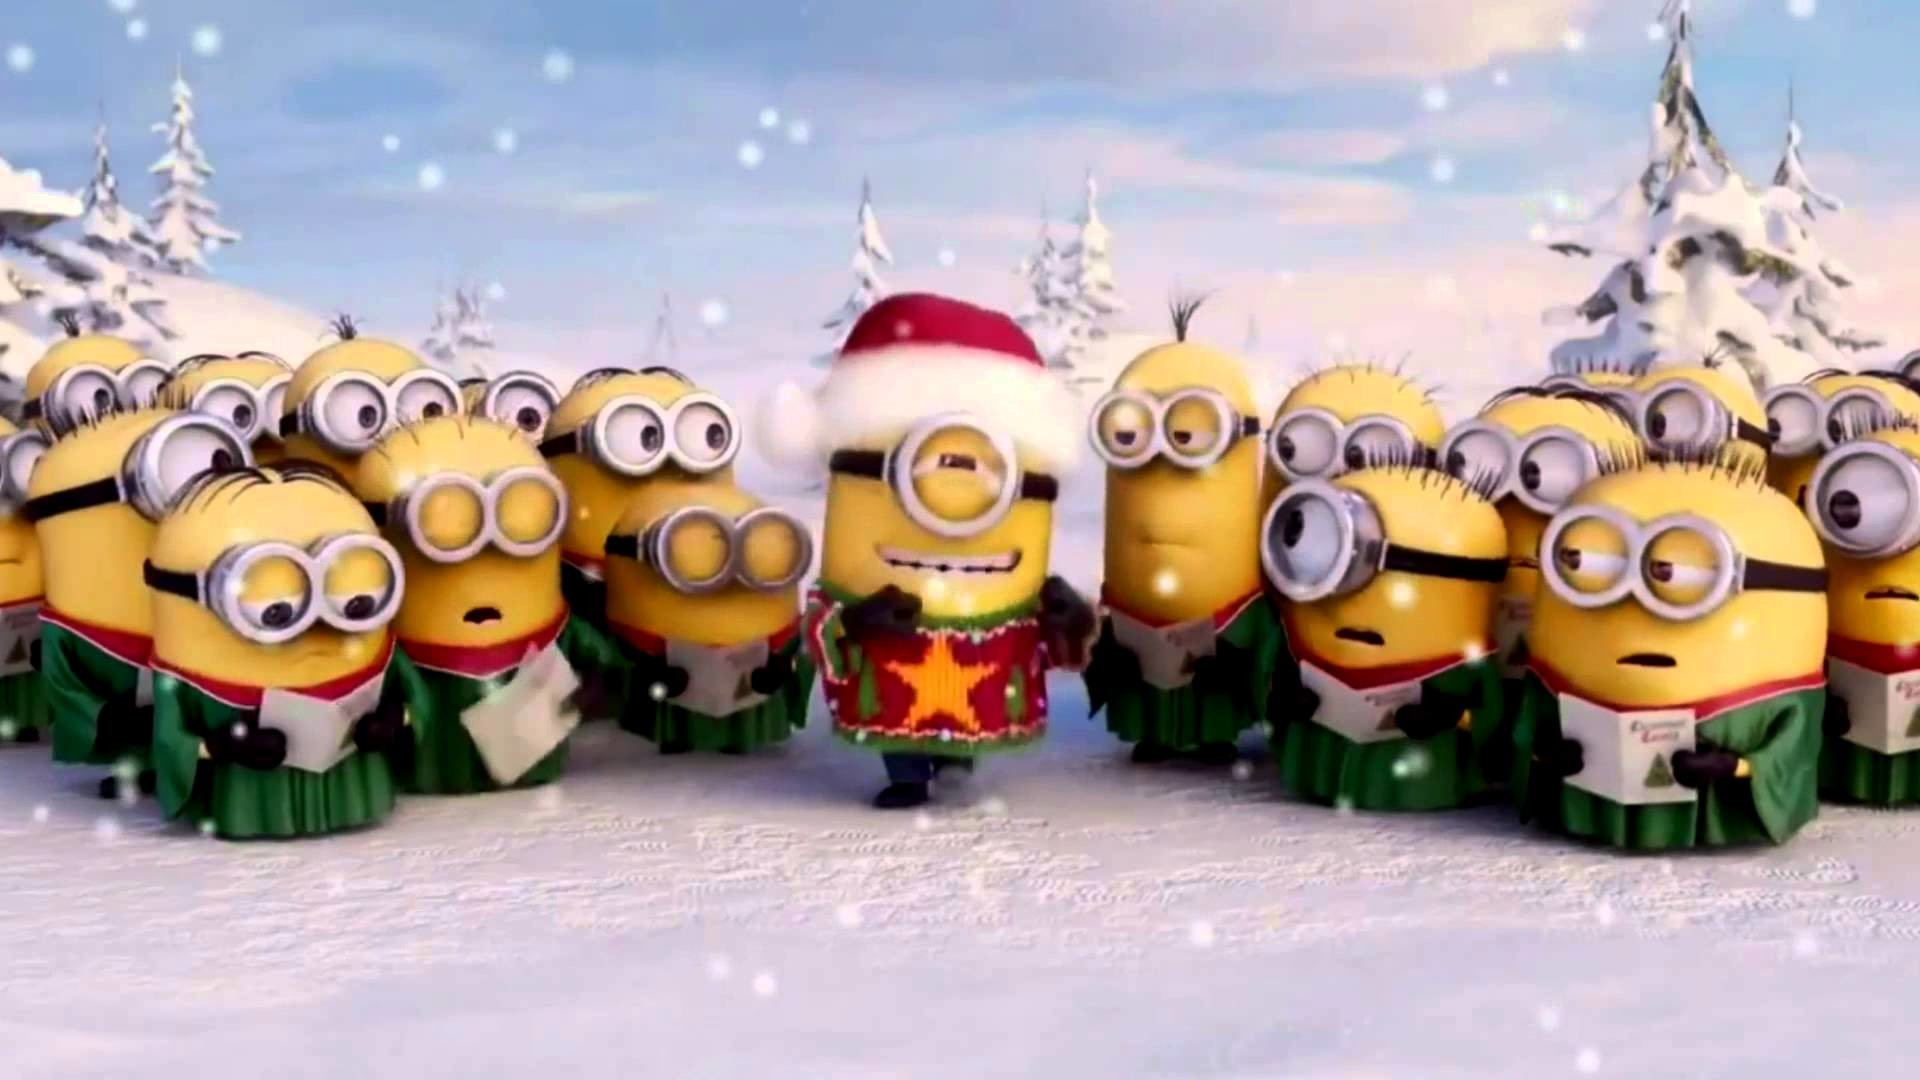 cute Christmas wallpapers minions · Christmas with minions in Suriname –  YouTube